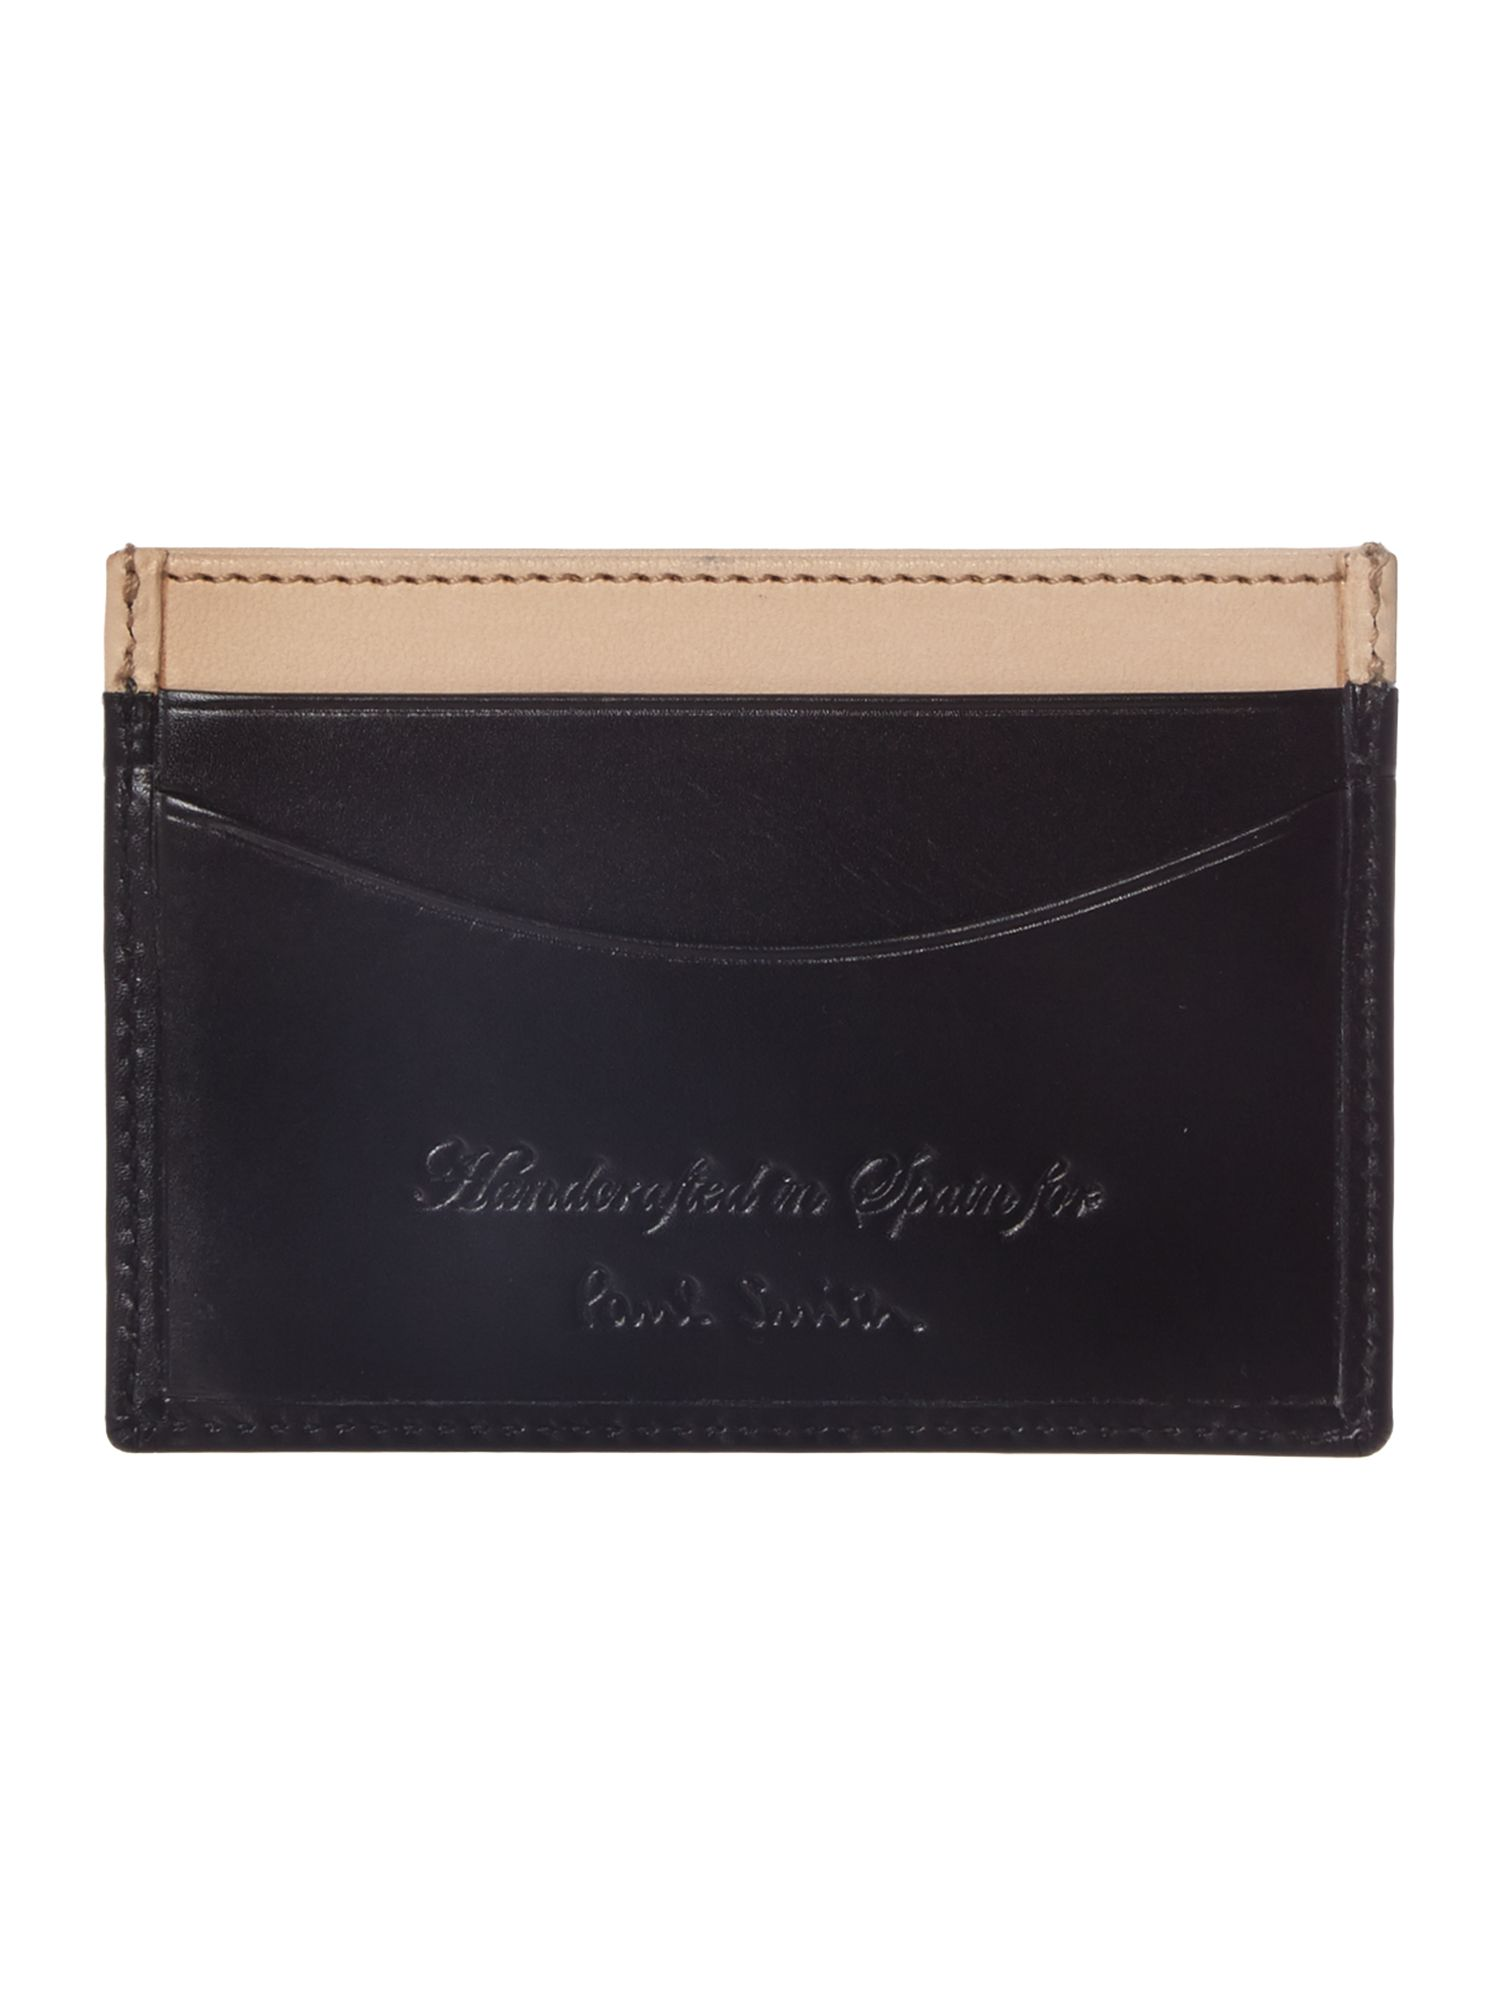 Internal top multistripe card holder